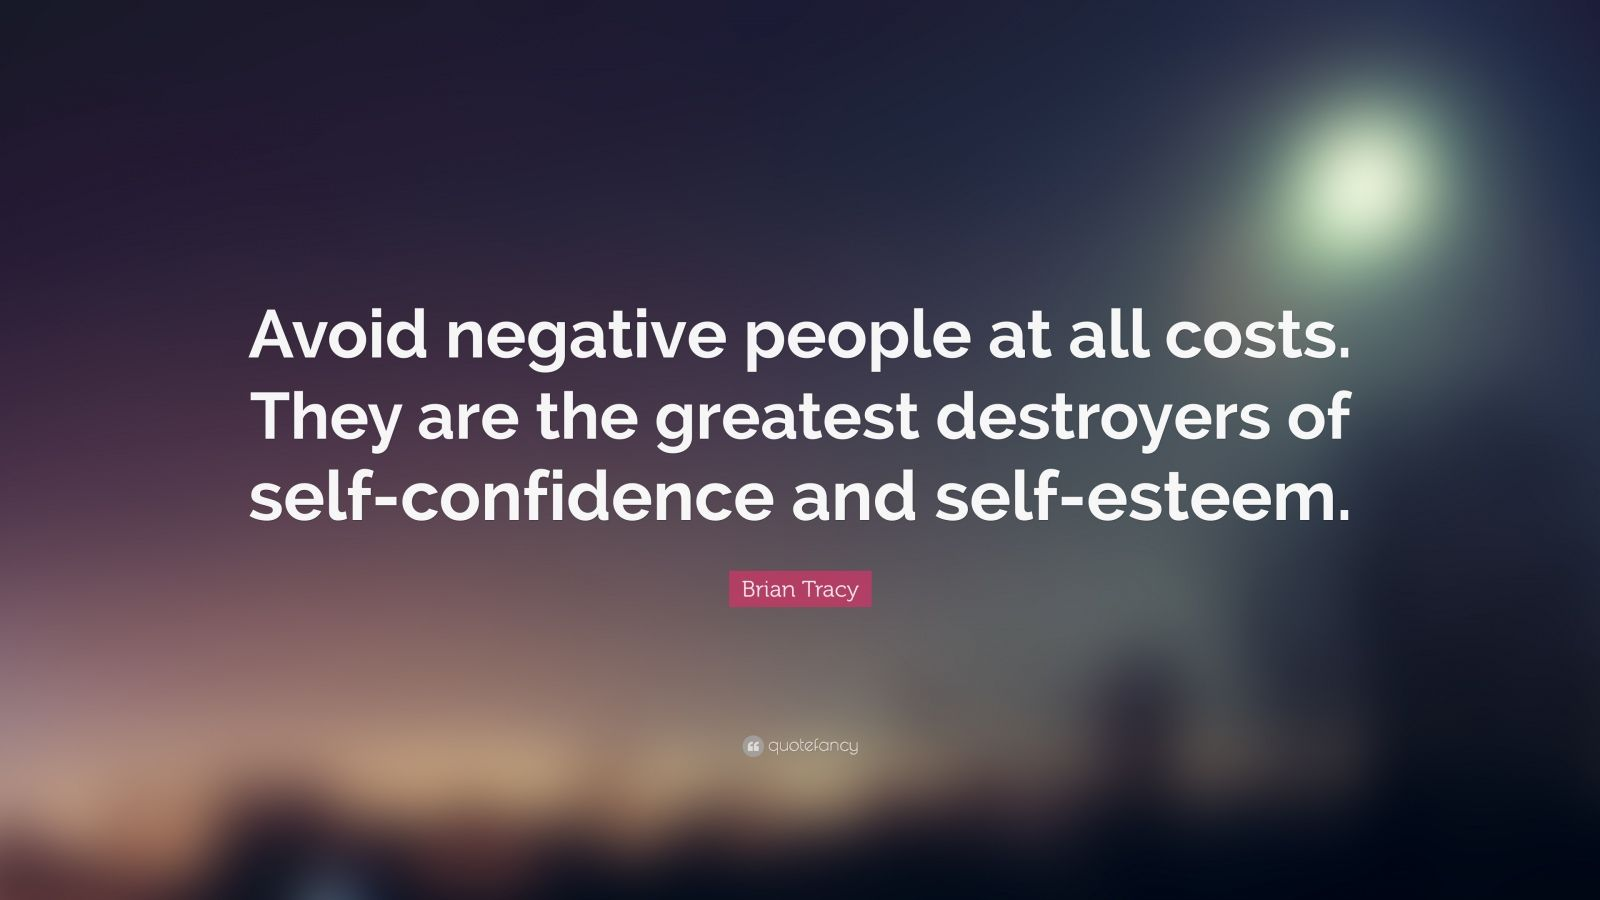 """Brian Tracy Quote: """"Avoid negative people at all costs. They are the greatest destroyers of self-confidence and self-esteem."""""""